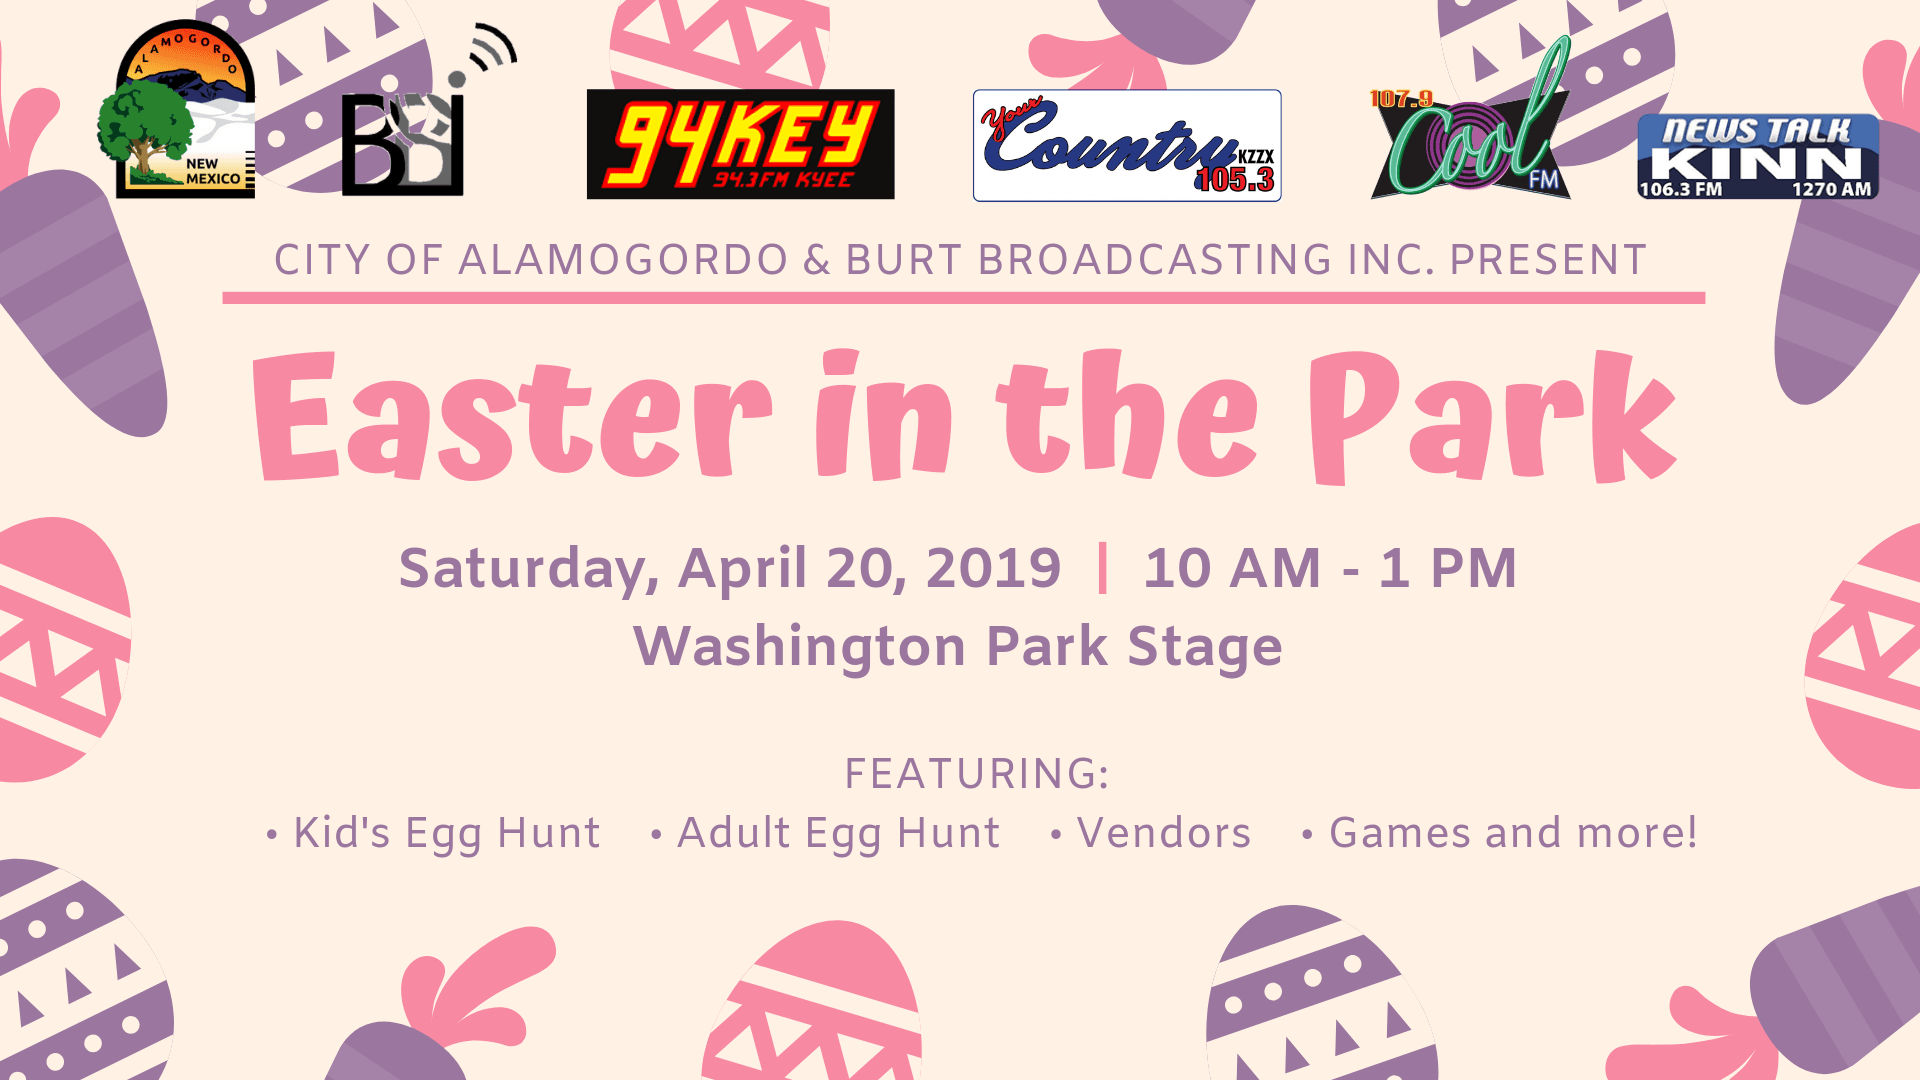 Easter in the Park event flyer, with purple and pink easter eggs, sponsor logos